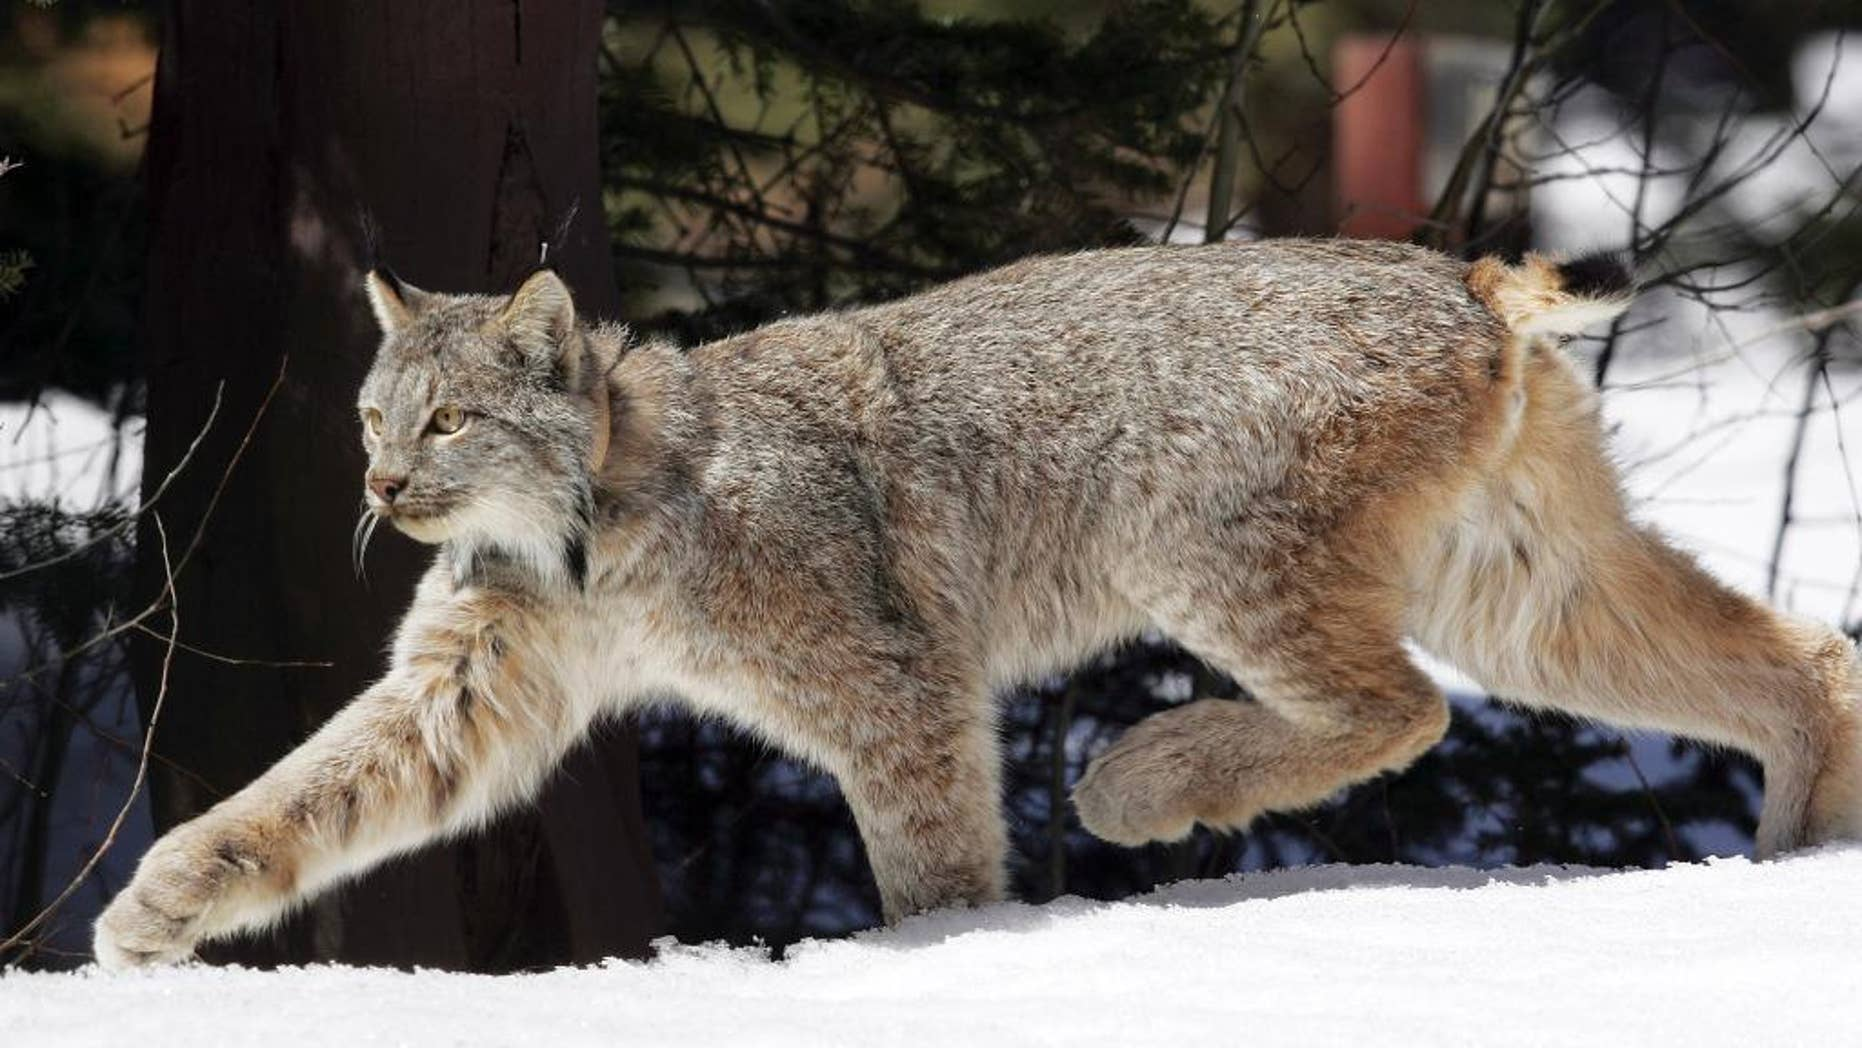 FILE - In this April 19, 2005 file photo, a Canada lynx heads into the Rio Grande National Forest after being released near Creede, Colo. Canada lynx gained federal protections in New Mexico on Thursday, Sept. 11, 2014, but U.S. wildlife officials again declined to designate critical habitat for the elusive wild cats in the Southern Rockies, parts of New England and other areas not considered essential to their survival. The two-part finding from the U.S. Fish and Wildlife Service means the forest-dwlling lynx will be protected as threatened throughout the lower 48 states. (AP Photo/David Zalubowski, File)